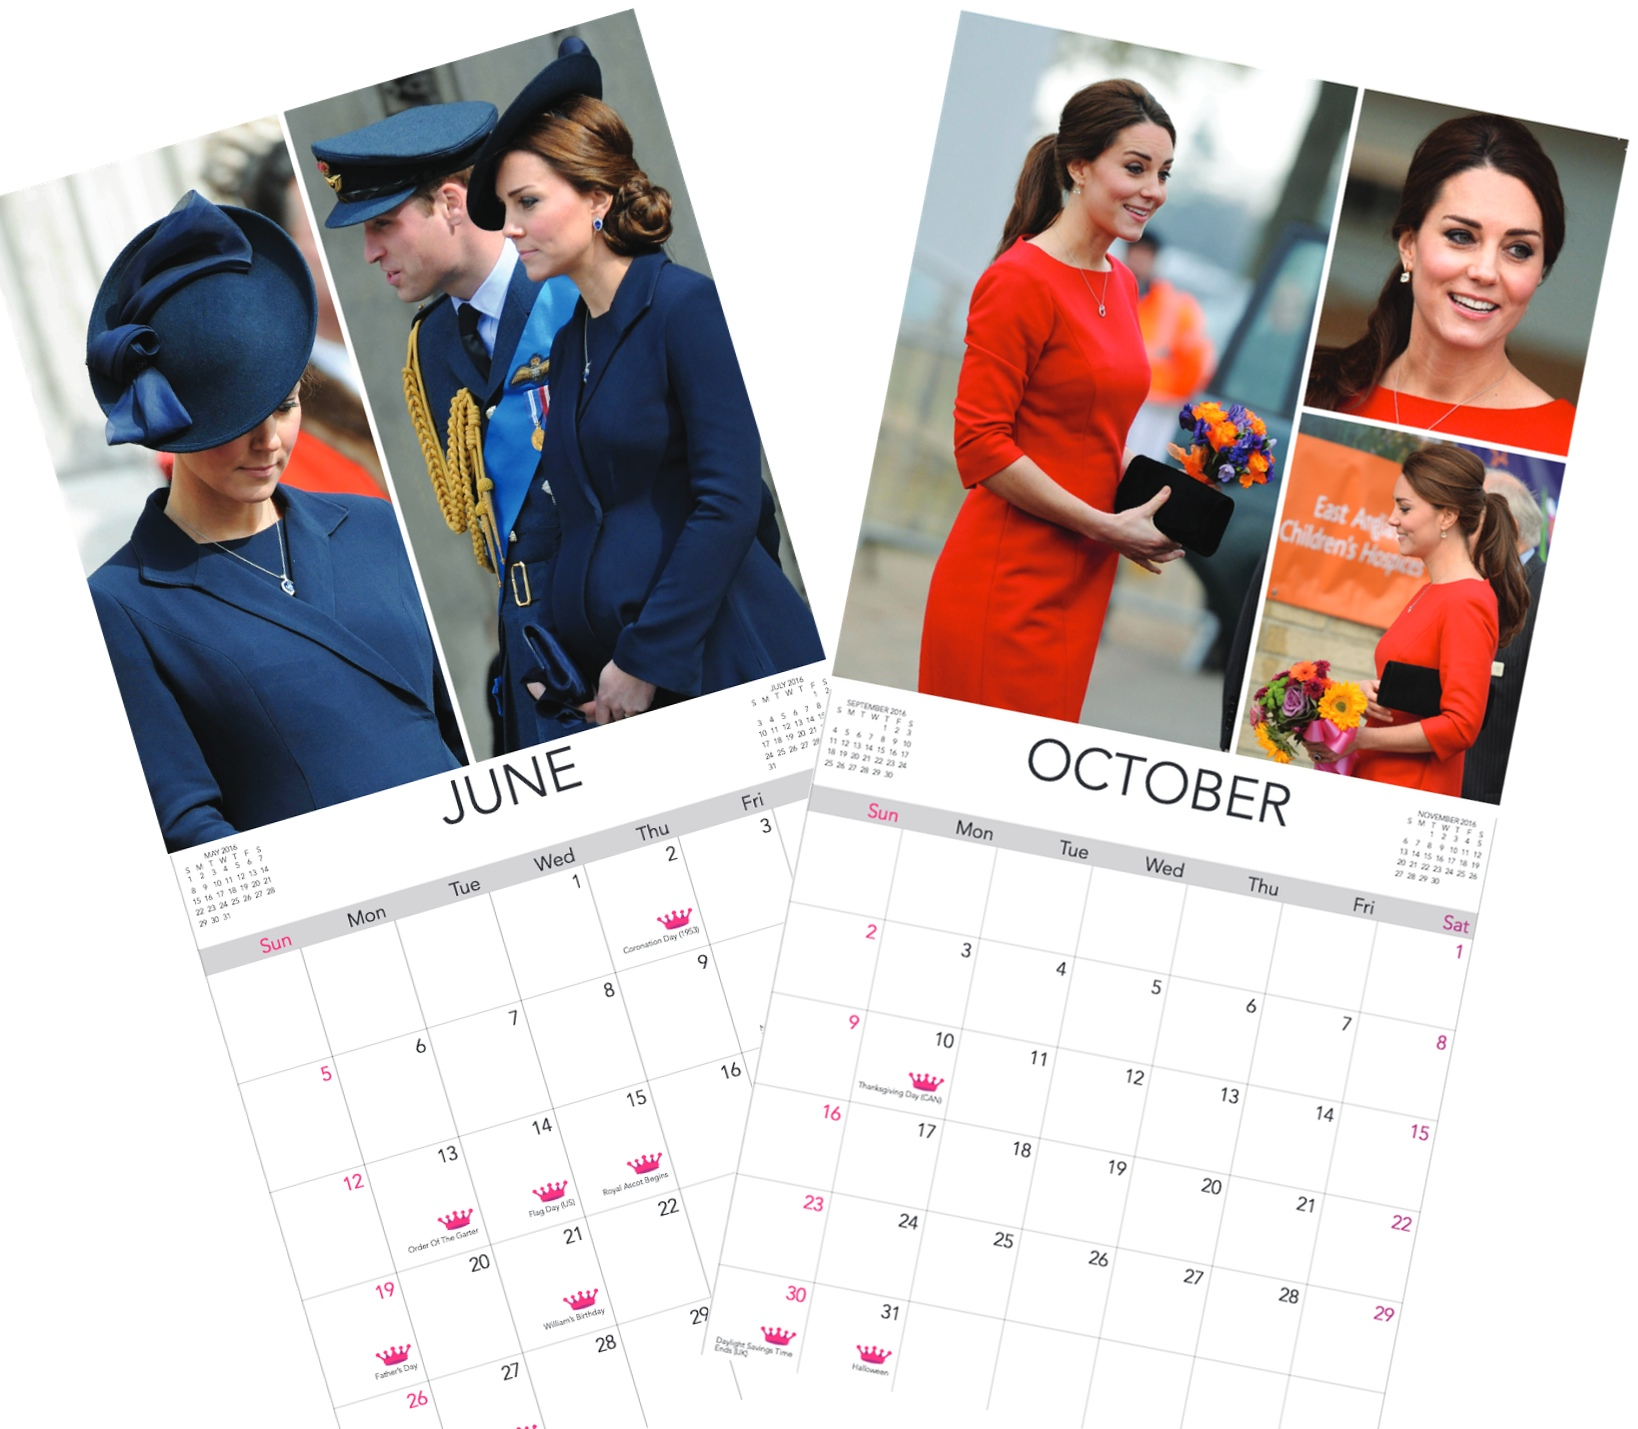 2016 Calendar June and October Montage with Dates